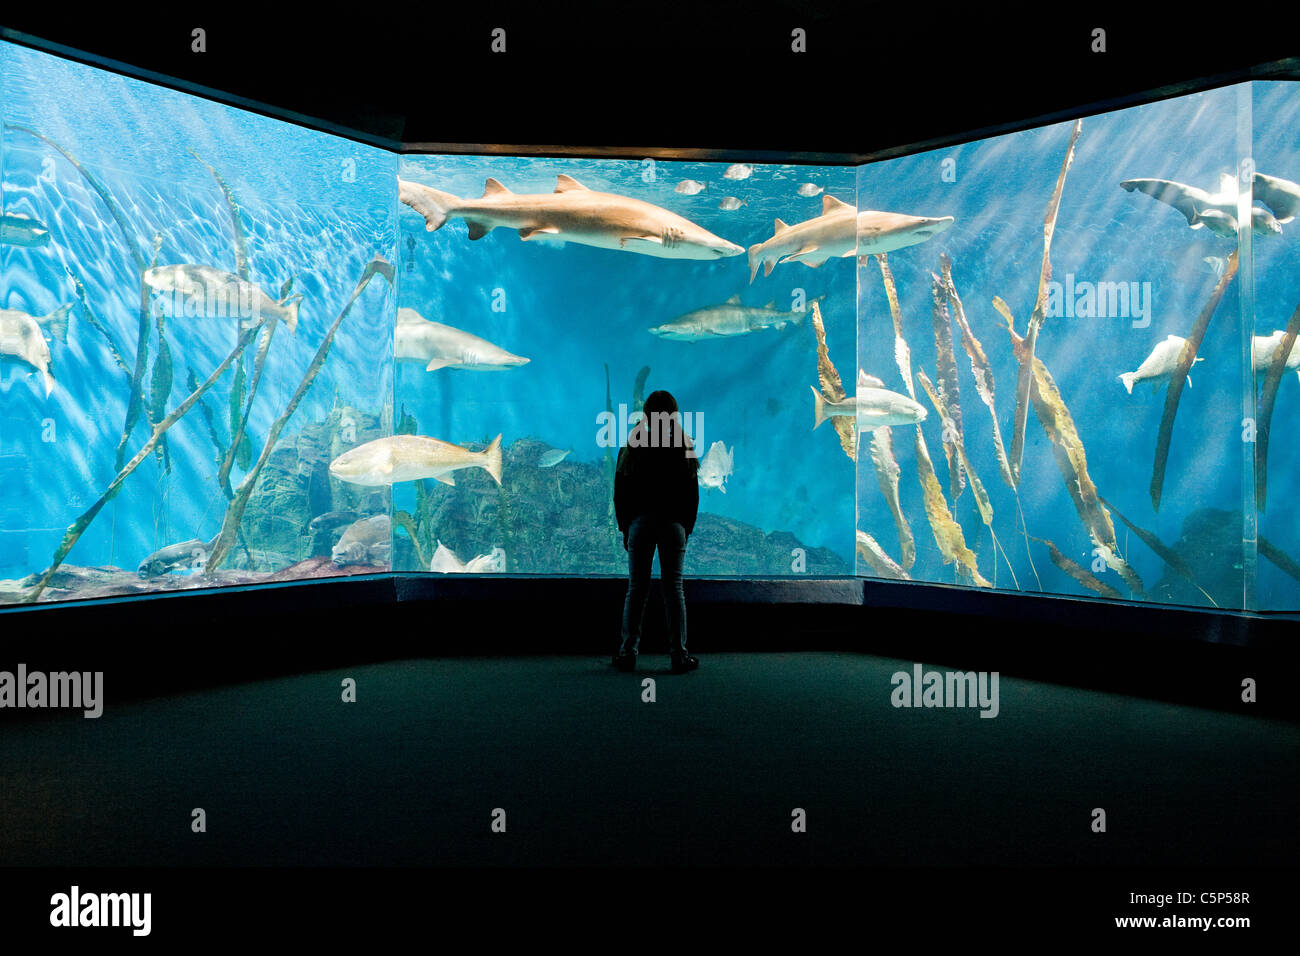 Fish stand stockfotos fish stand bilder alamy for Aquarium torremolinos